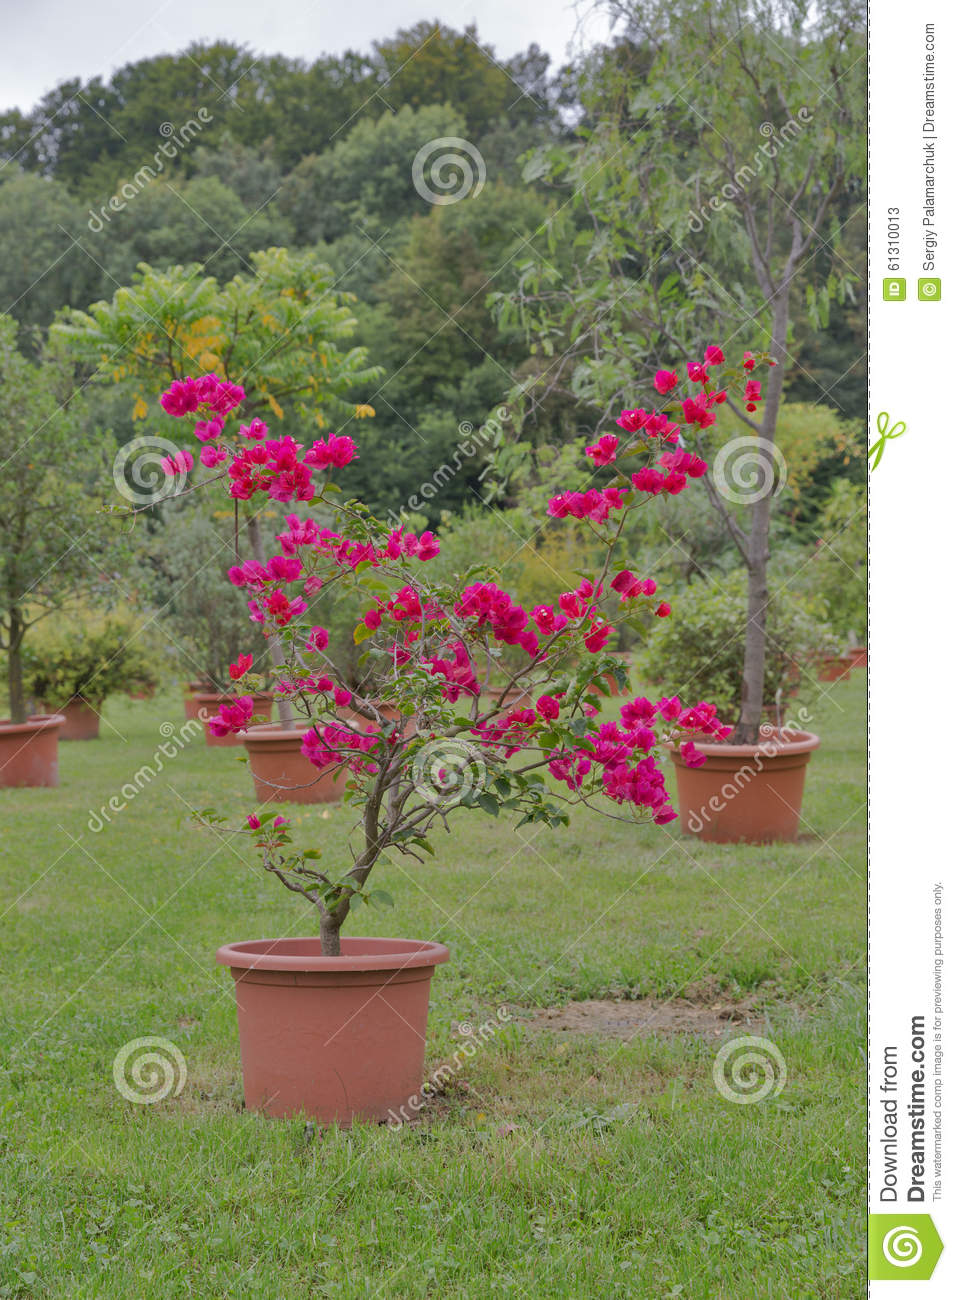 Red Bougainvillea Flower In Pot Outdoor Stock Image - Image of grass ...